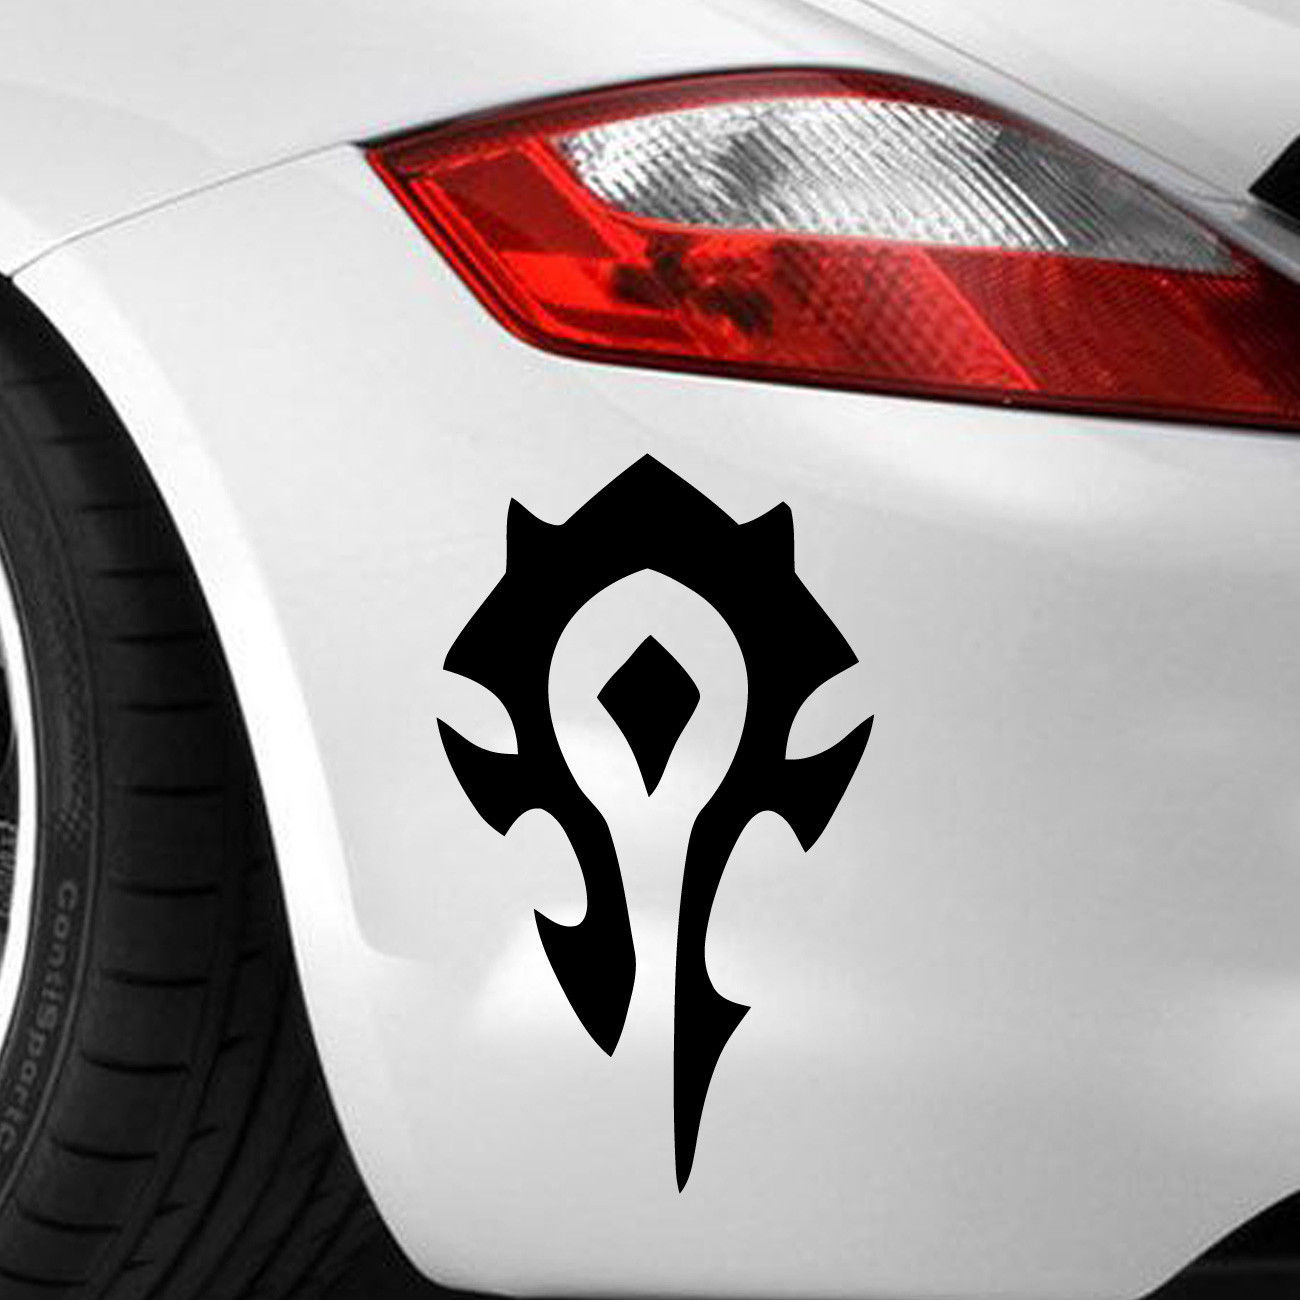 Horde Wow Game Decal Sticker Vinyl Vehicle Car Wall Motorcycle SUVs Bumper Laptop Car Styling